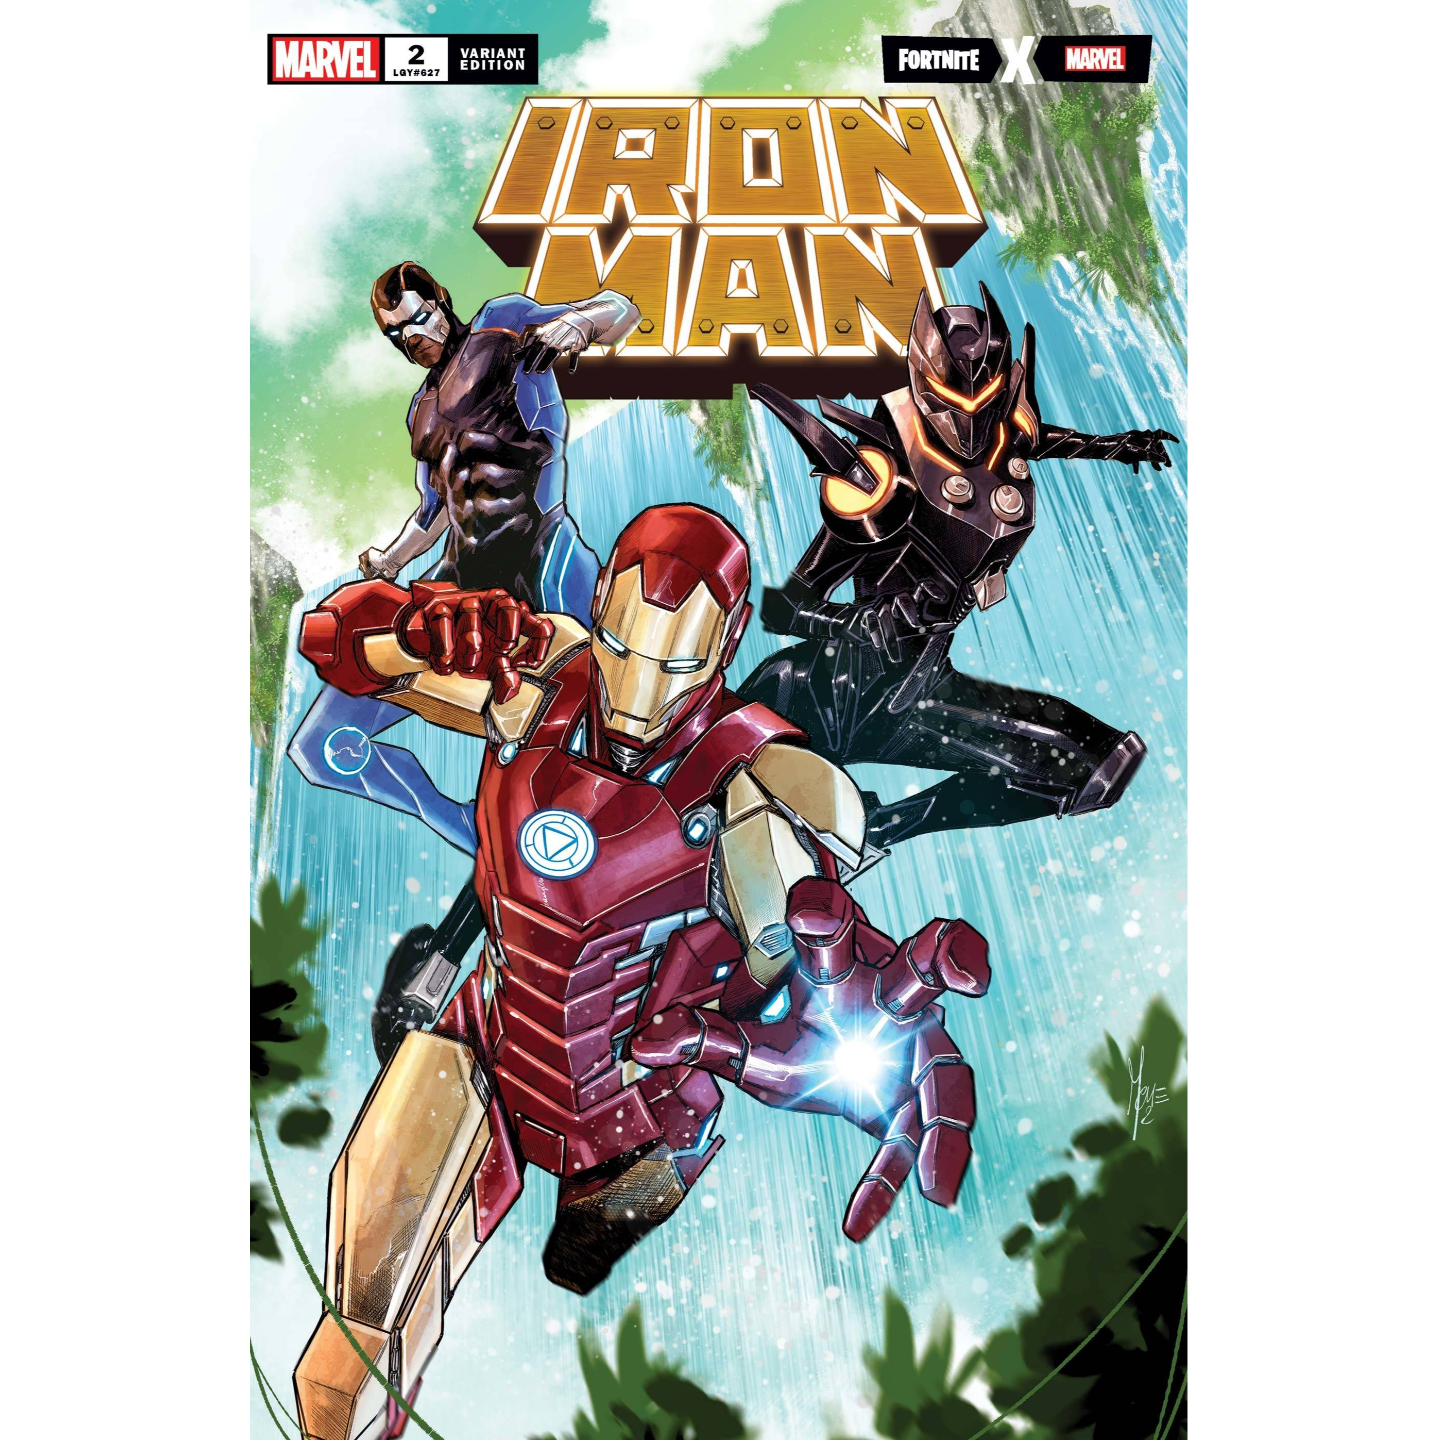 IRON MAN #2 CHECCHETTO FORTNITE VAR